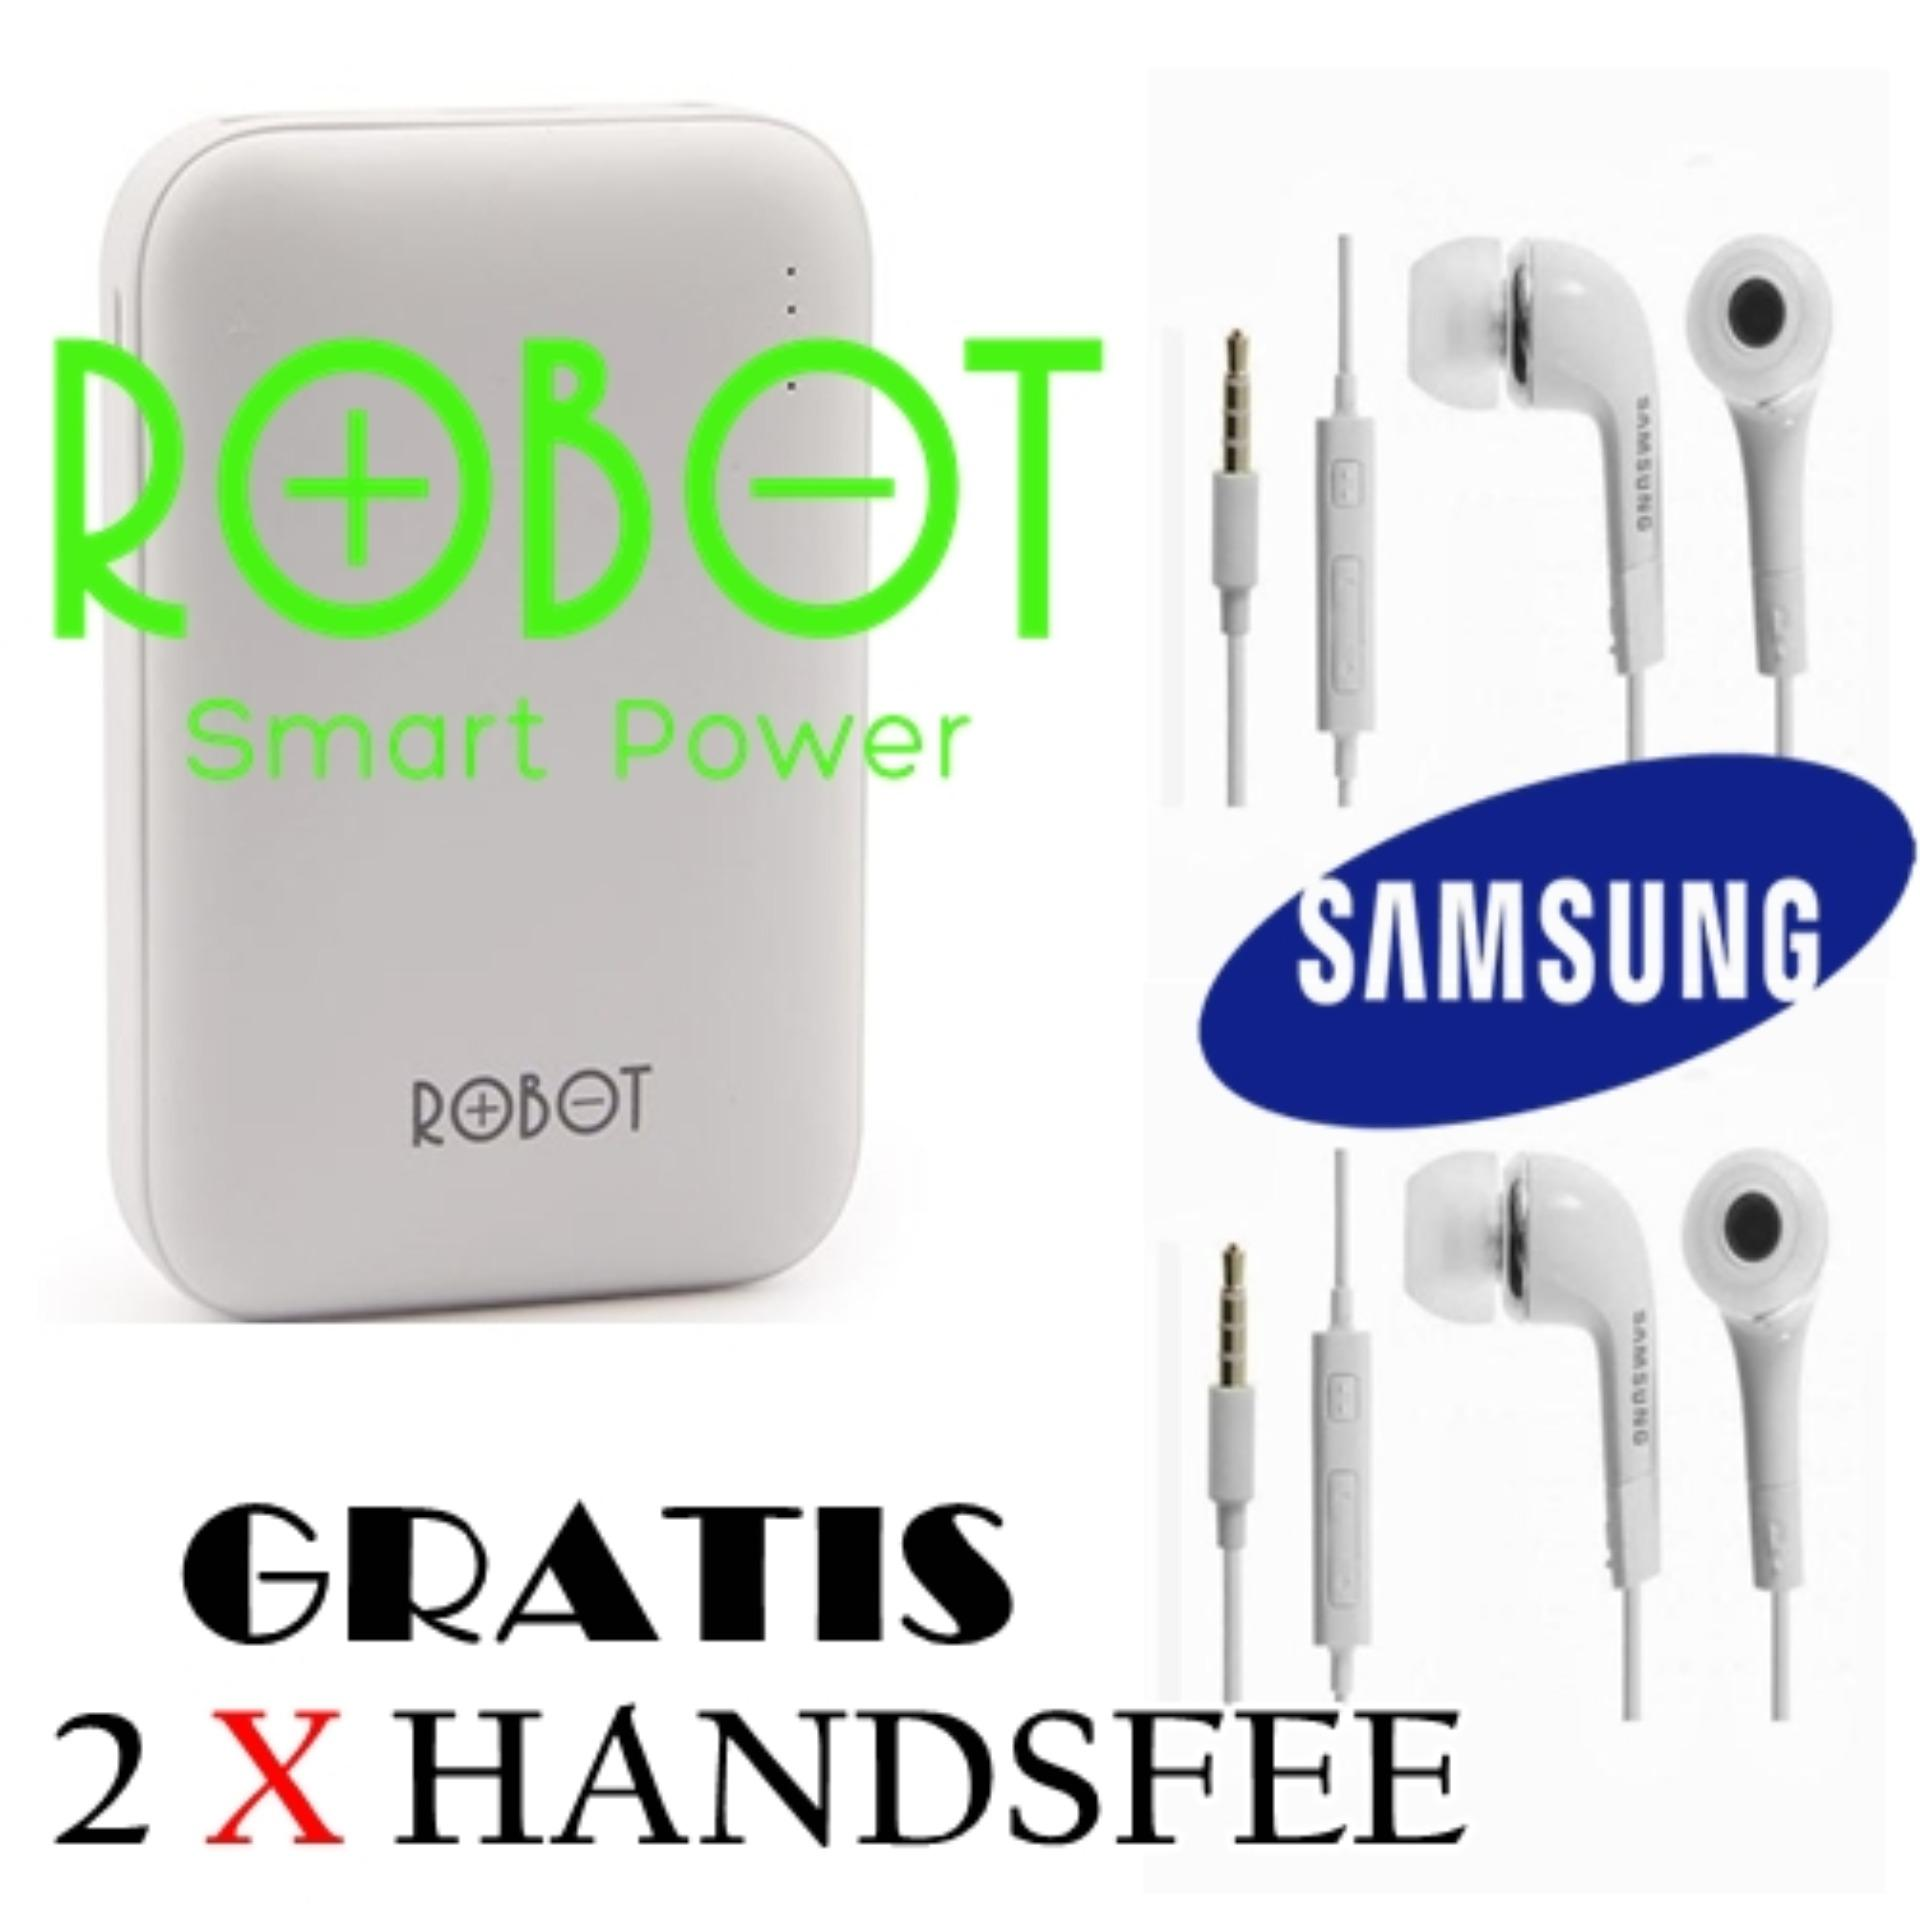 Robot by Vivan Power Bank RT7200 6600mAh 2 USB Ports for Android GRATIS 2 X handsfree samsung